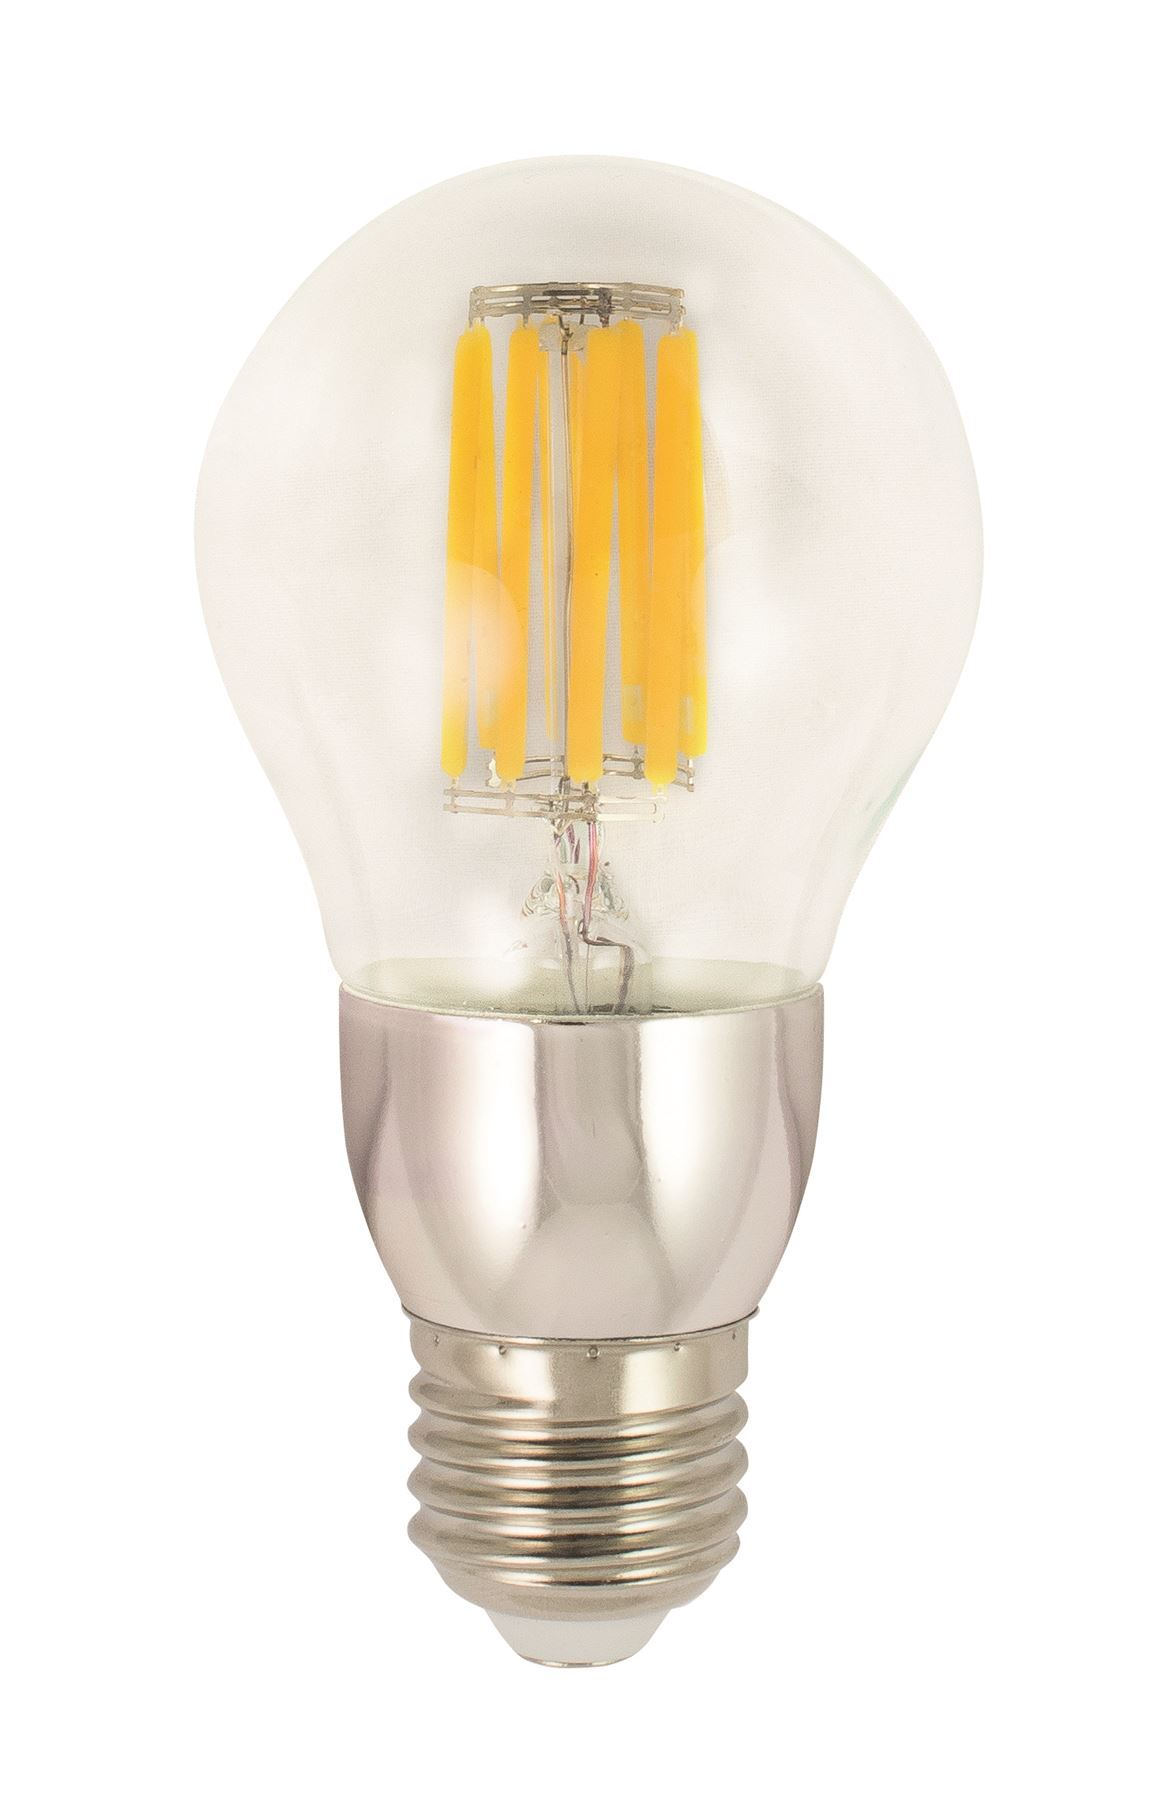 Old fashion light bulb 43